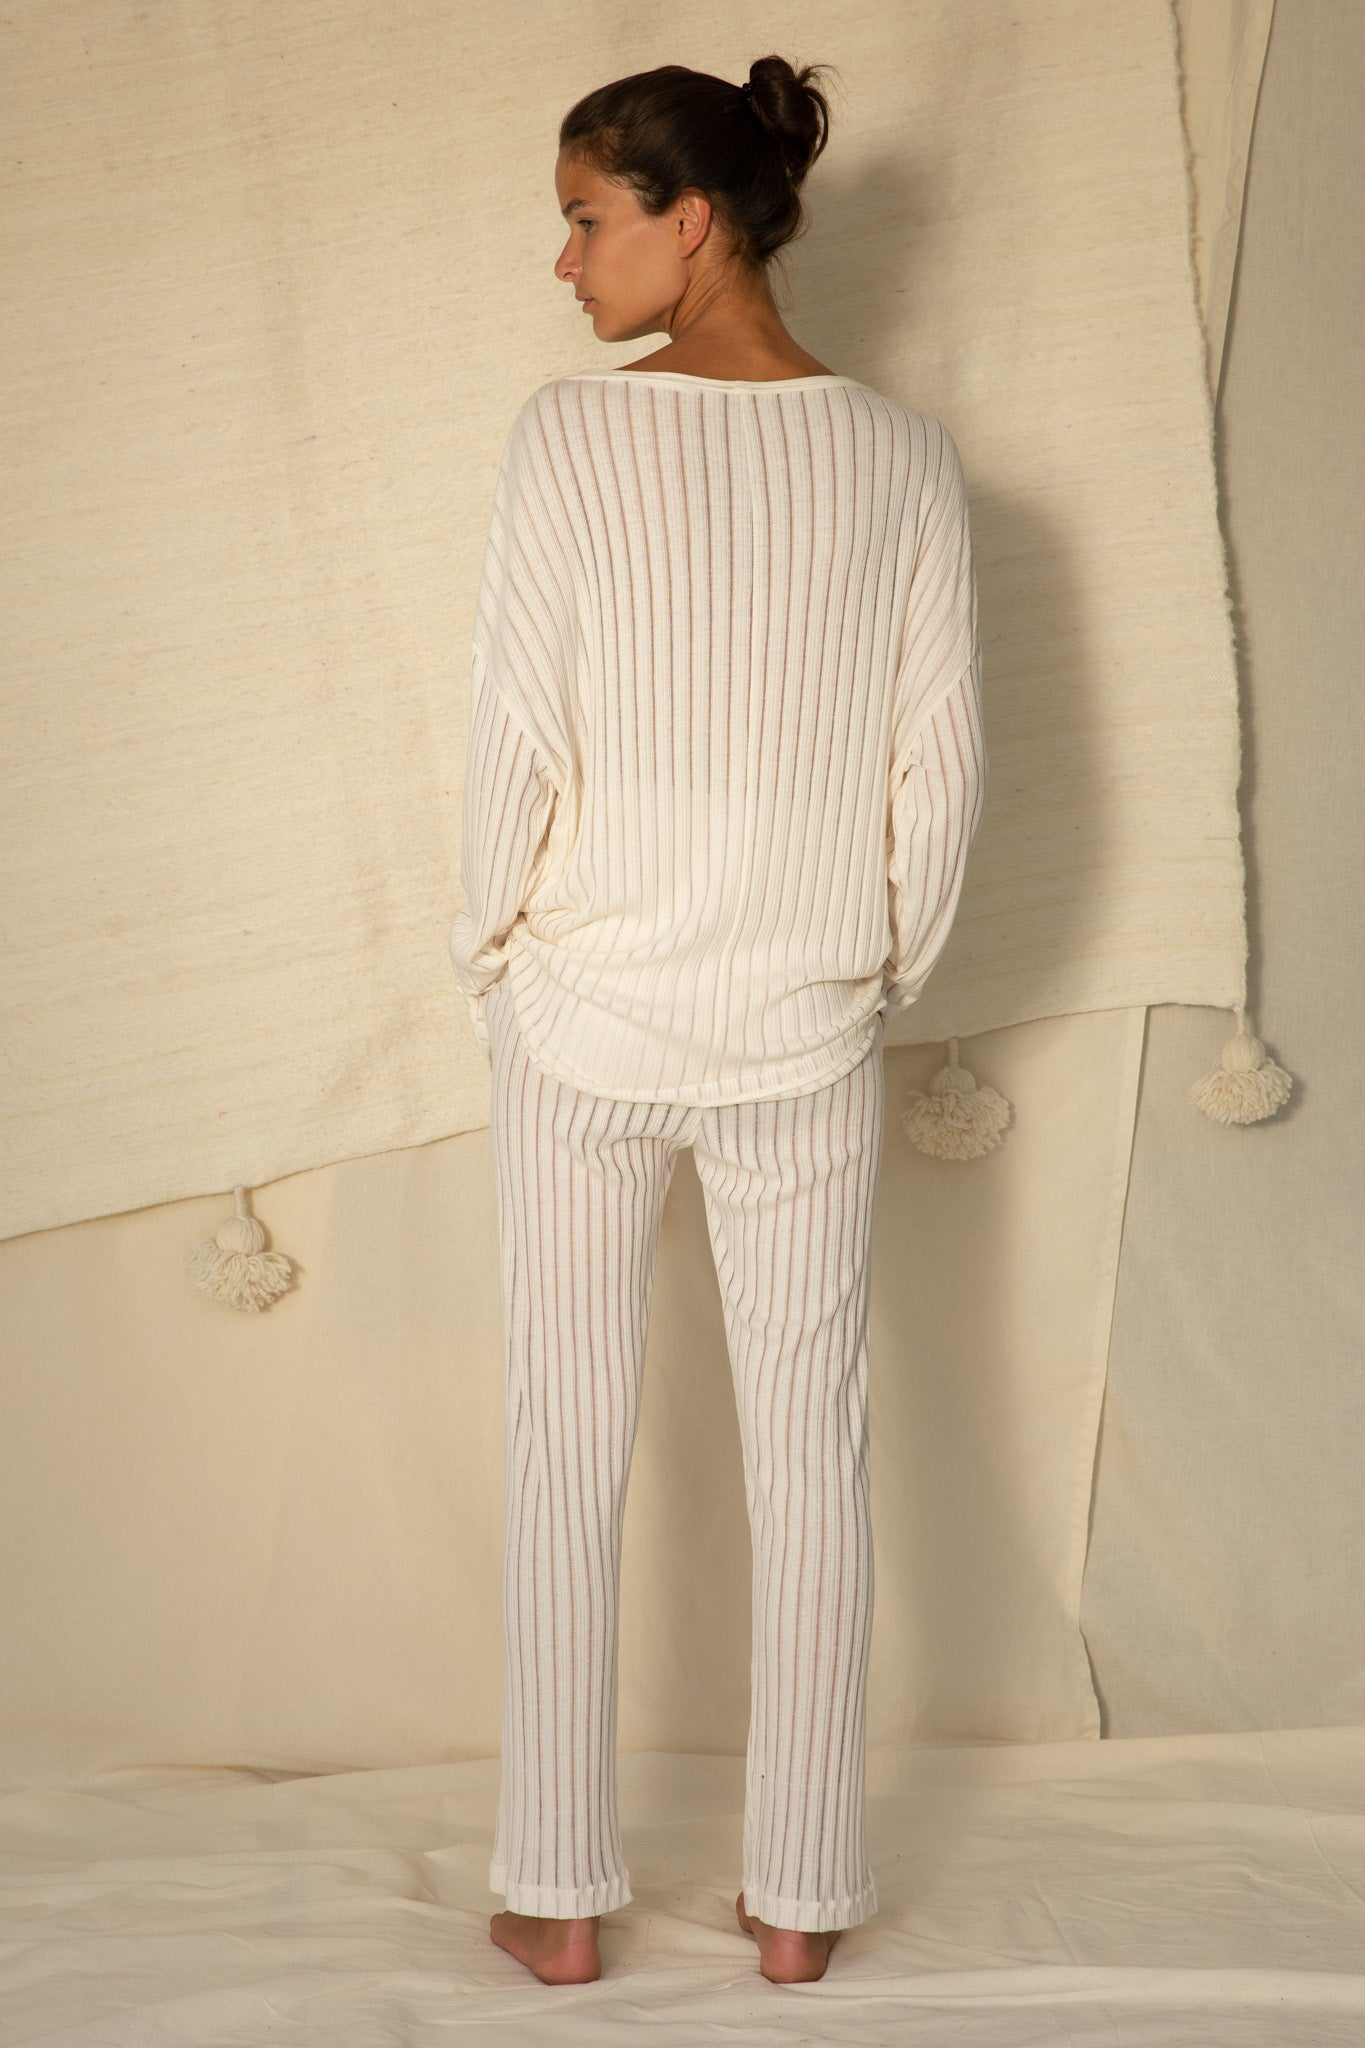 Pauli Cardigan in Off White